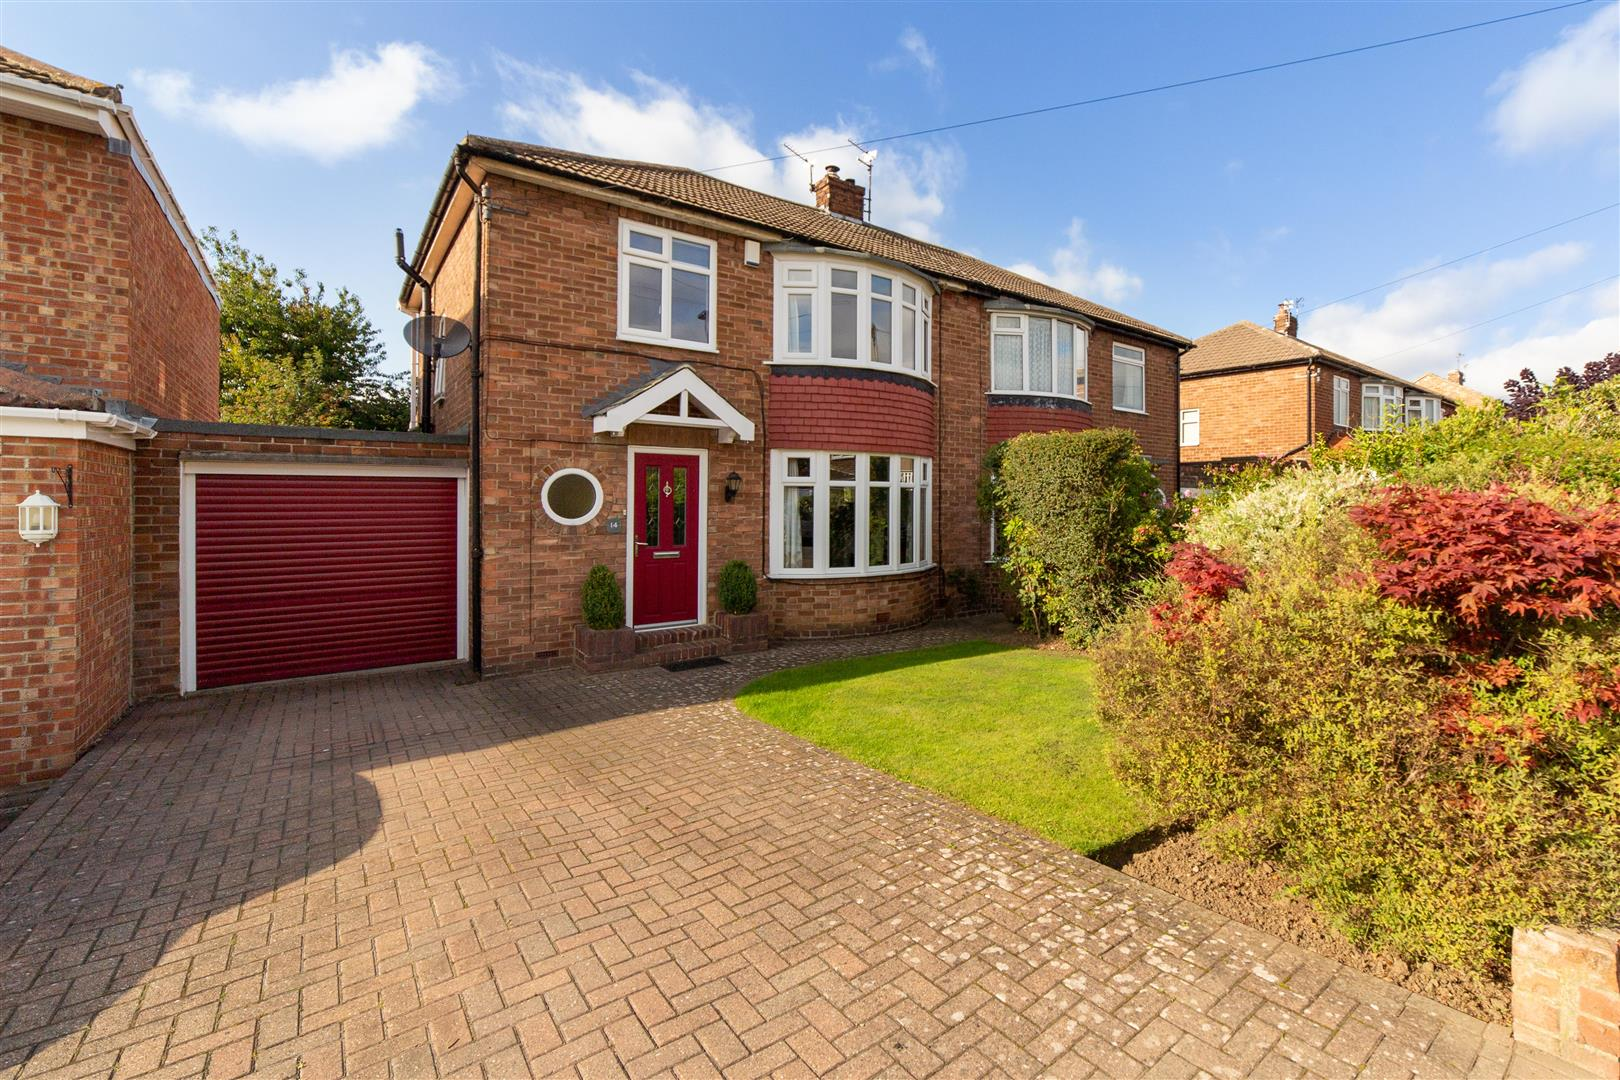 3 bed semi-detached house for sale in Waterbury Road, Newcastle Upon Tyne, NE3